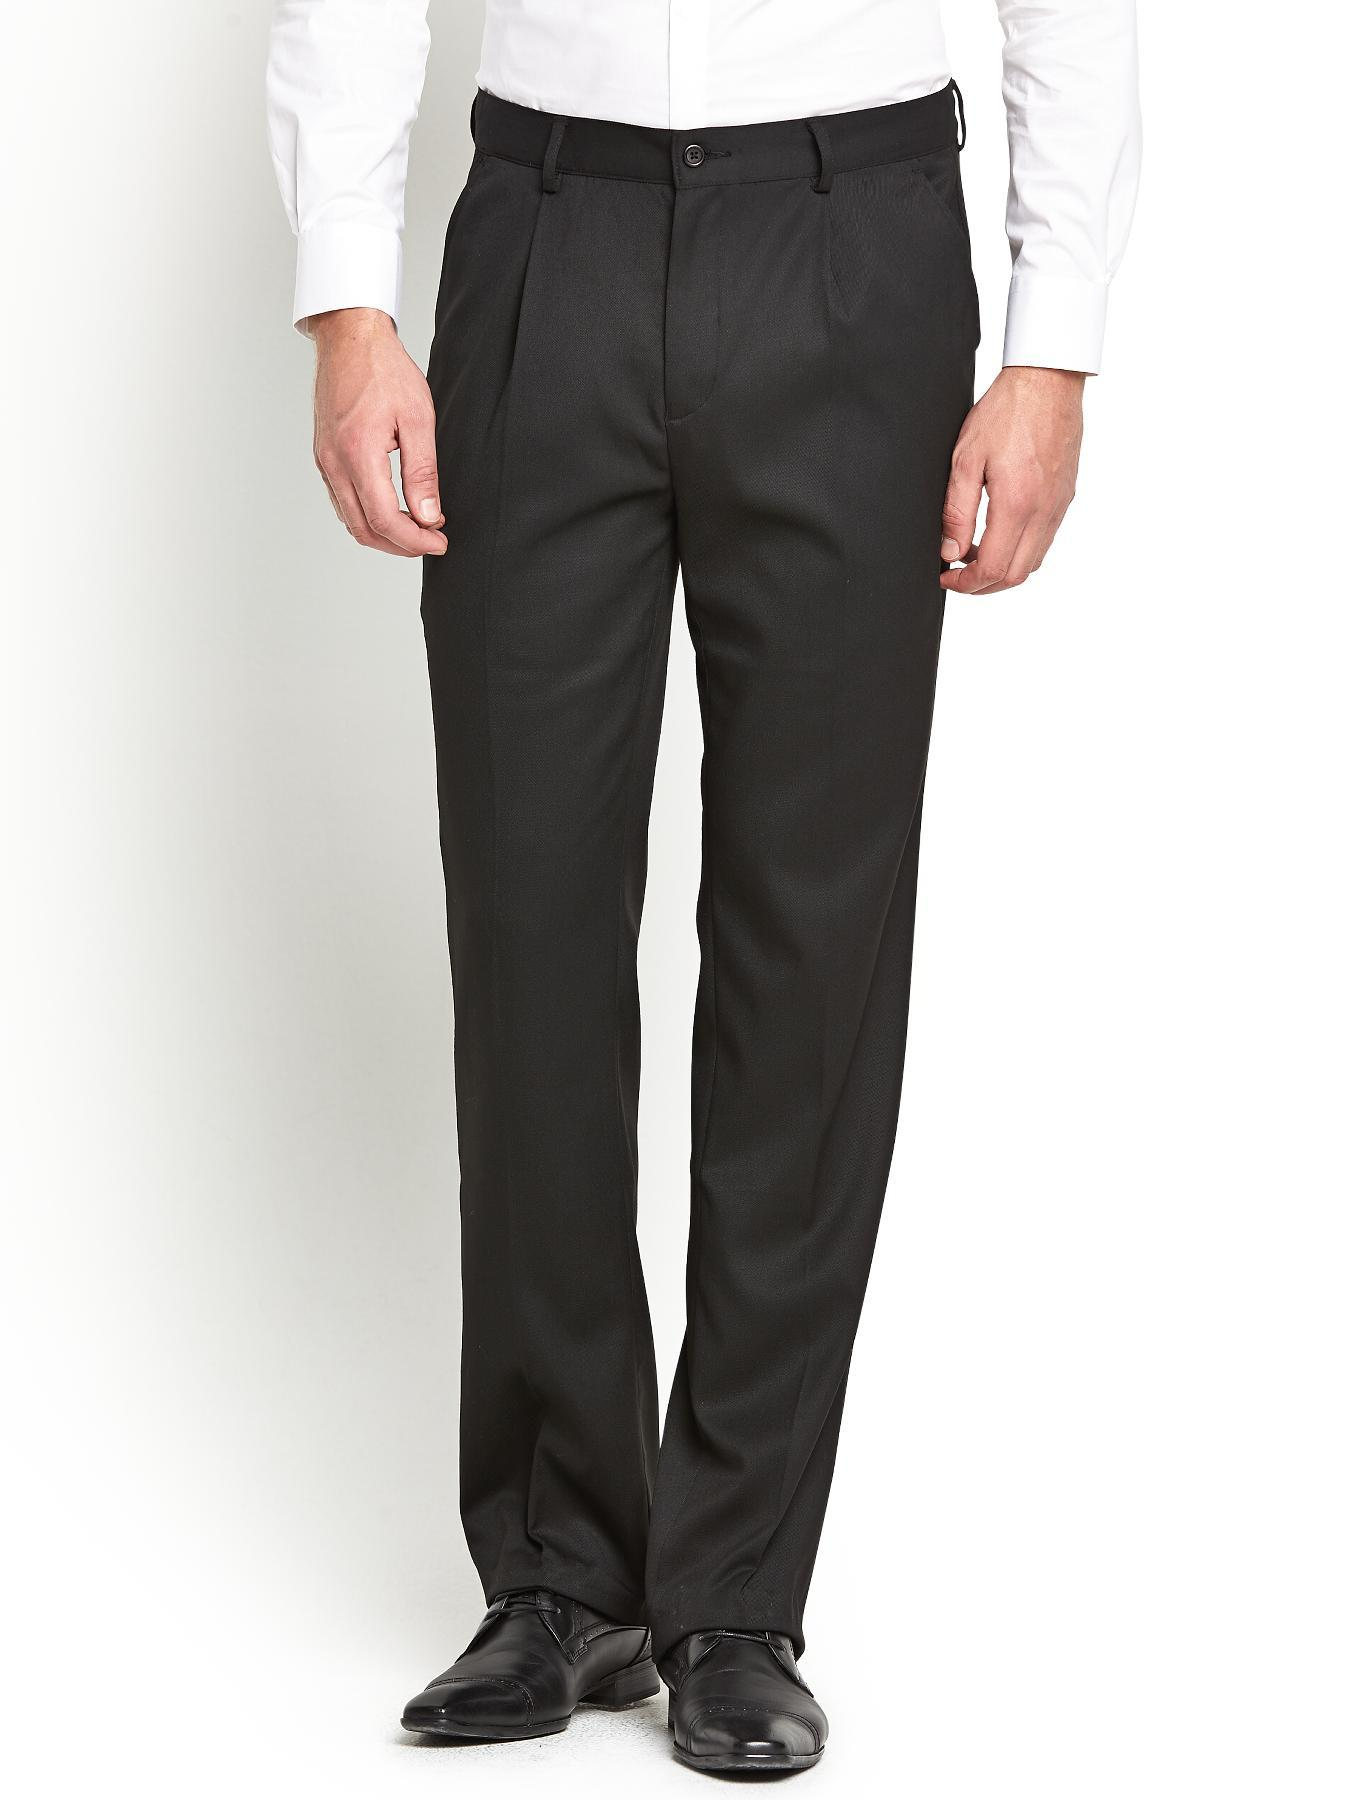 Mens Pleat Front Trousers, Black